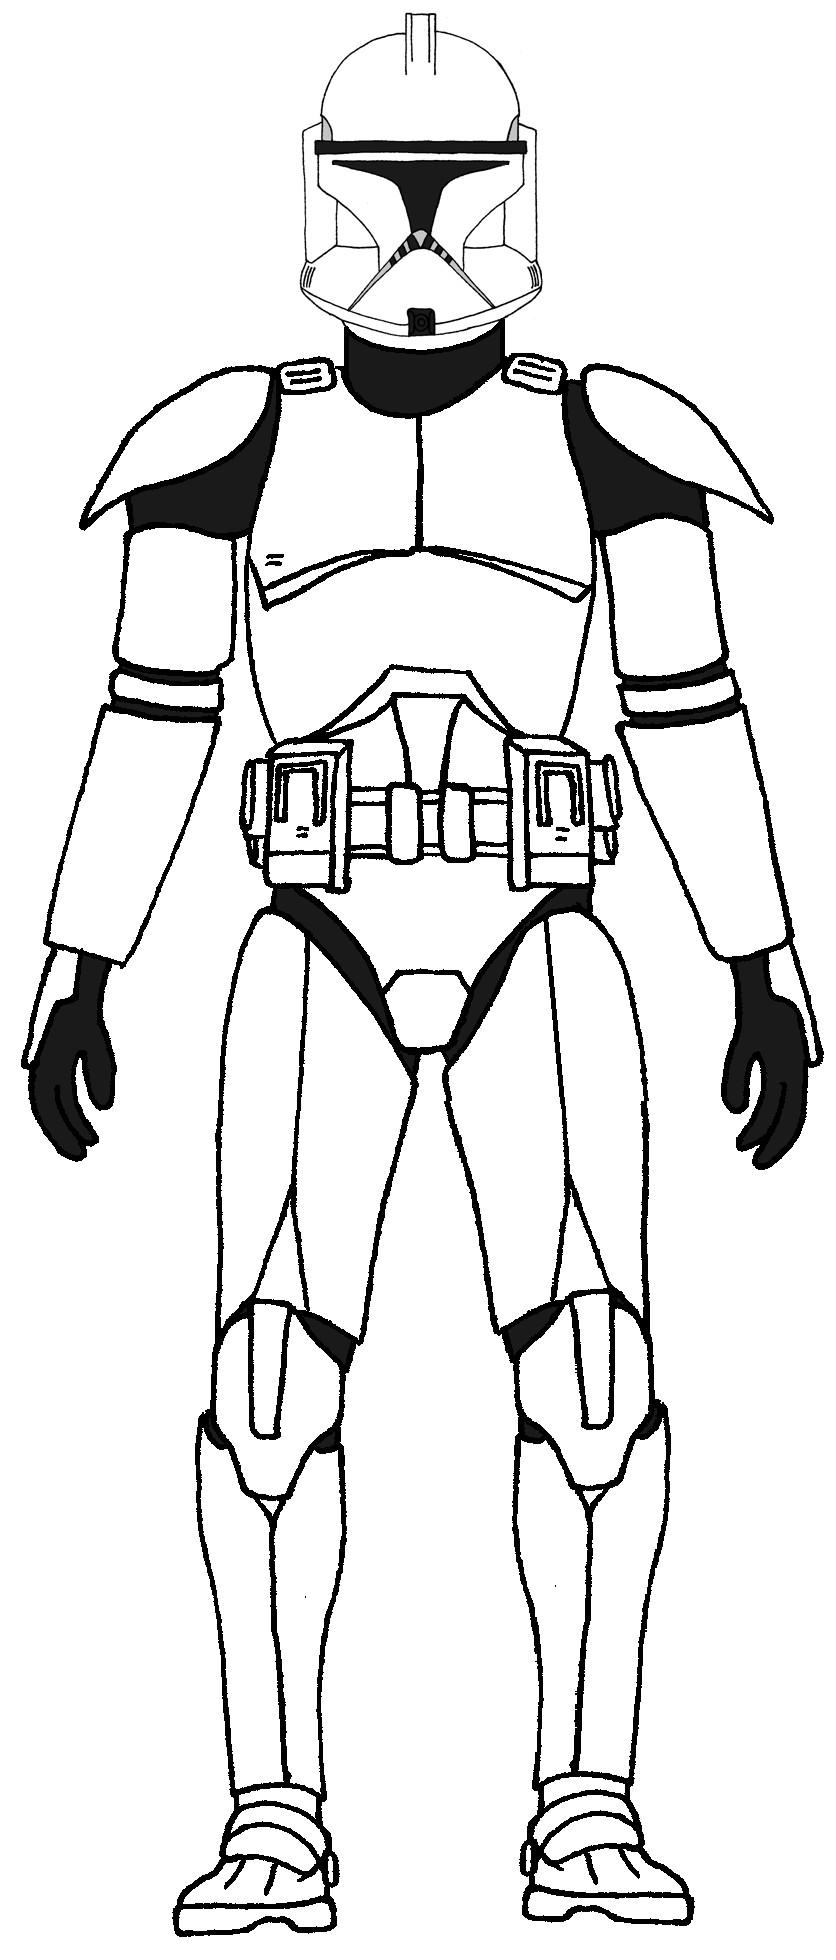 clone wars coloring star wars to download star wars kids coloring pages clone coloring wars